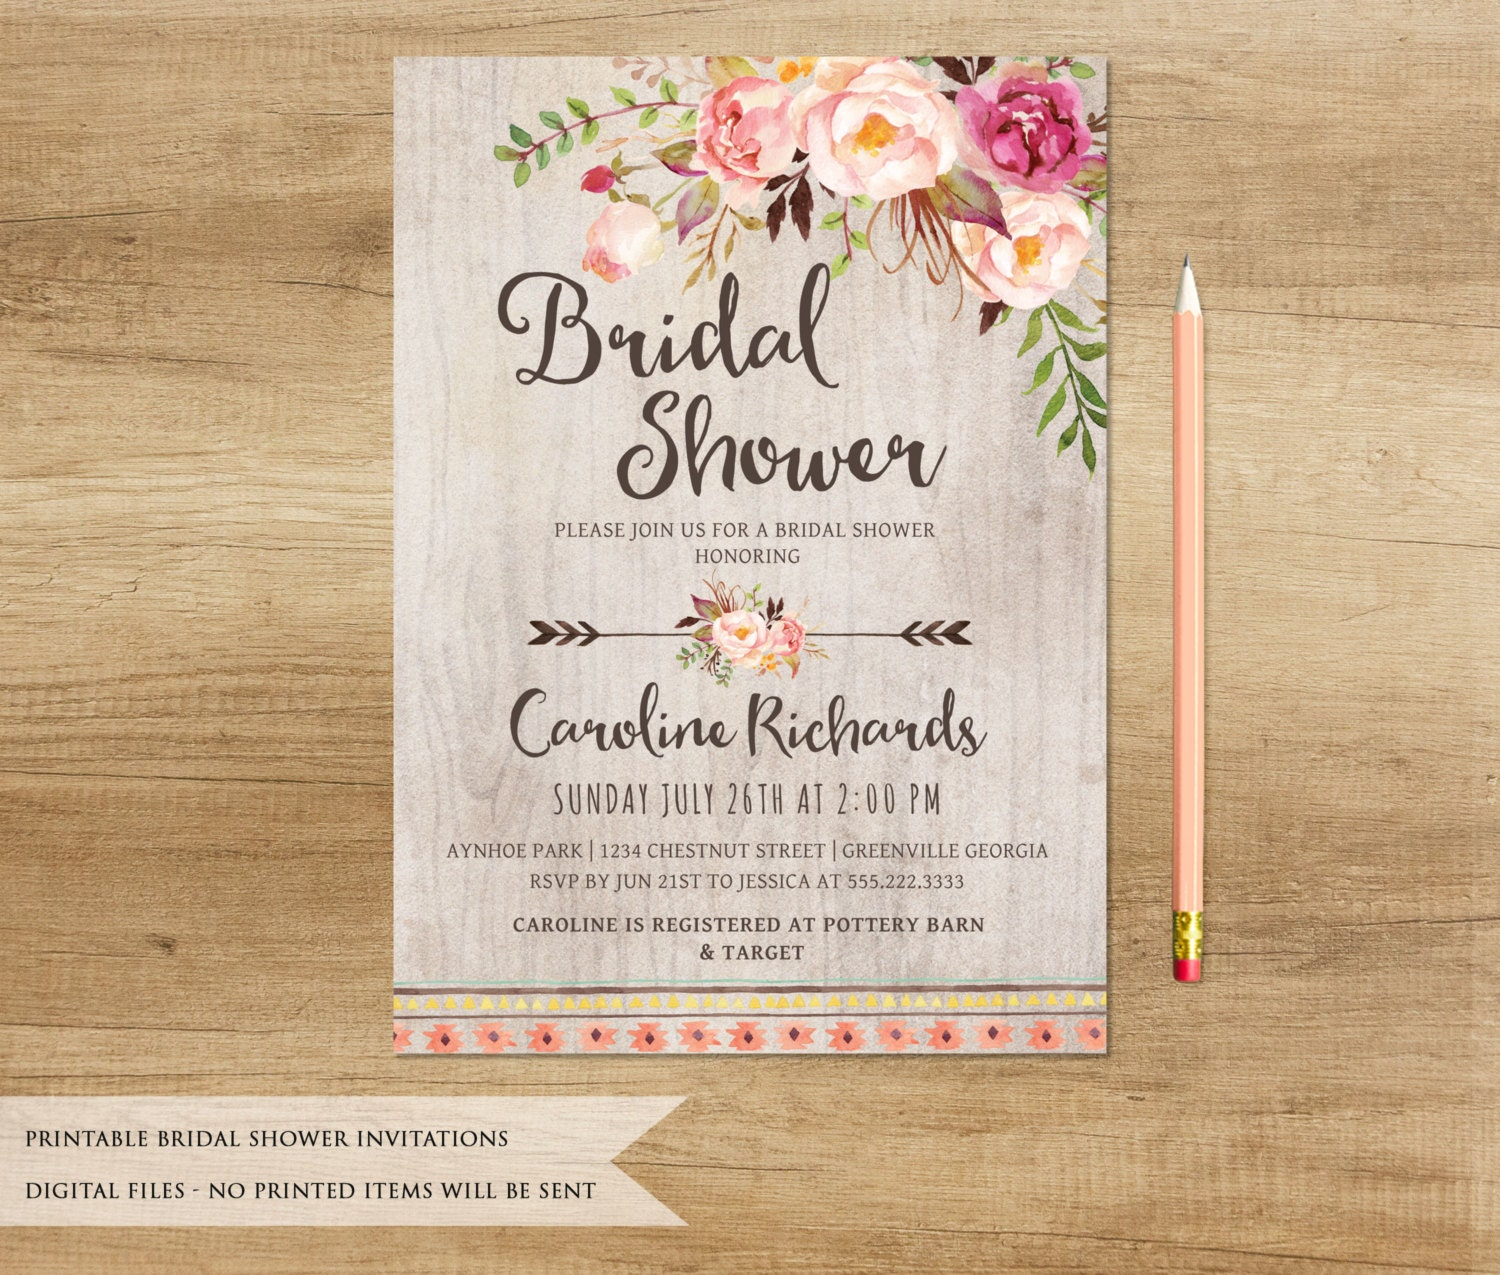 Soft image with printable bridal shower invitations